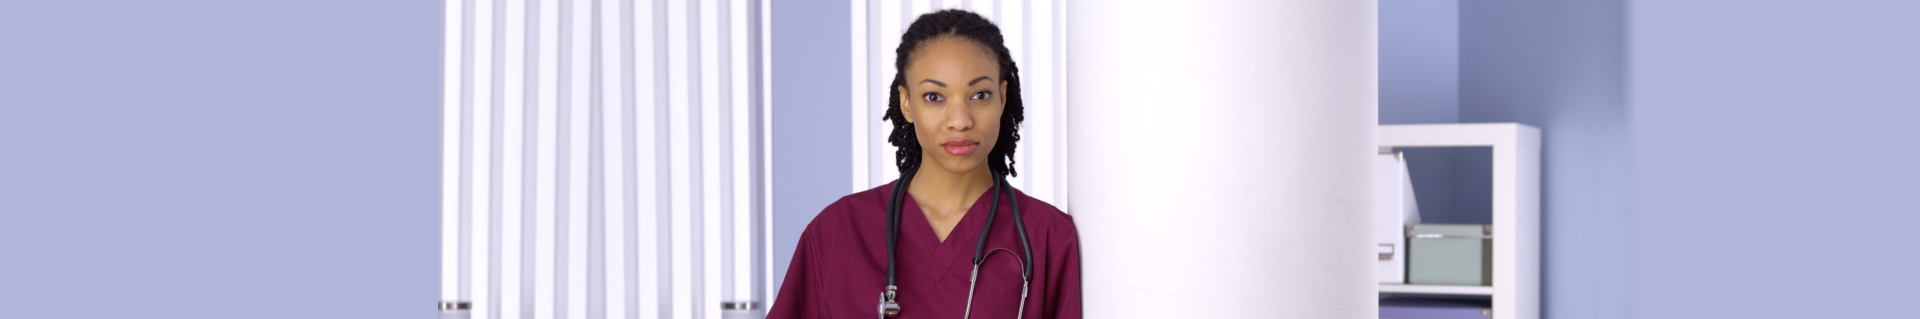 Black woman nurse standing in office